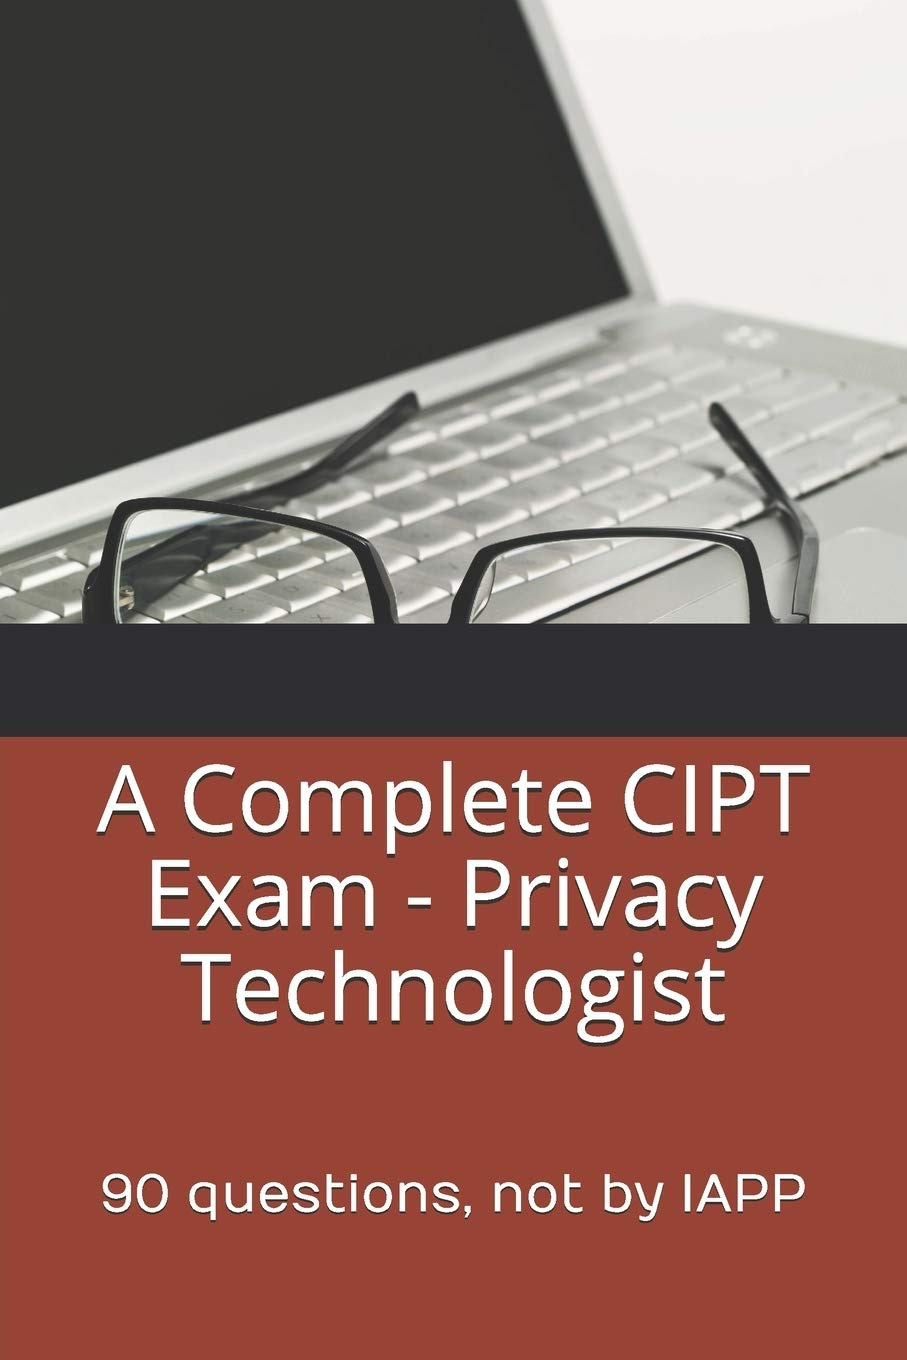 A Complete CIPT Exam - Privacy Technologist: 90 questions, not by IAPP